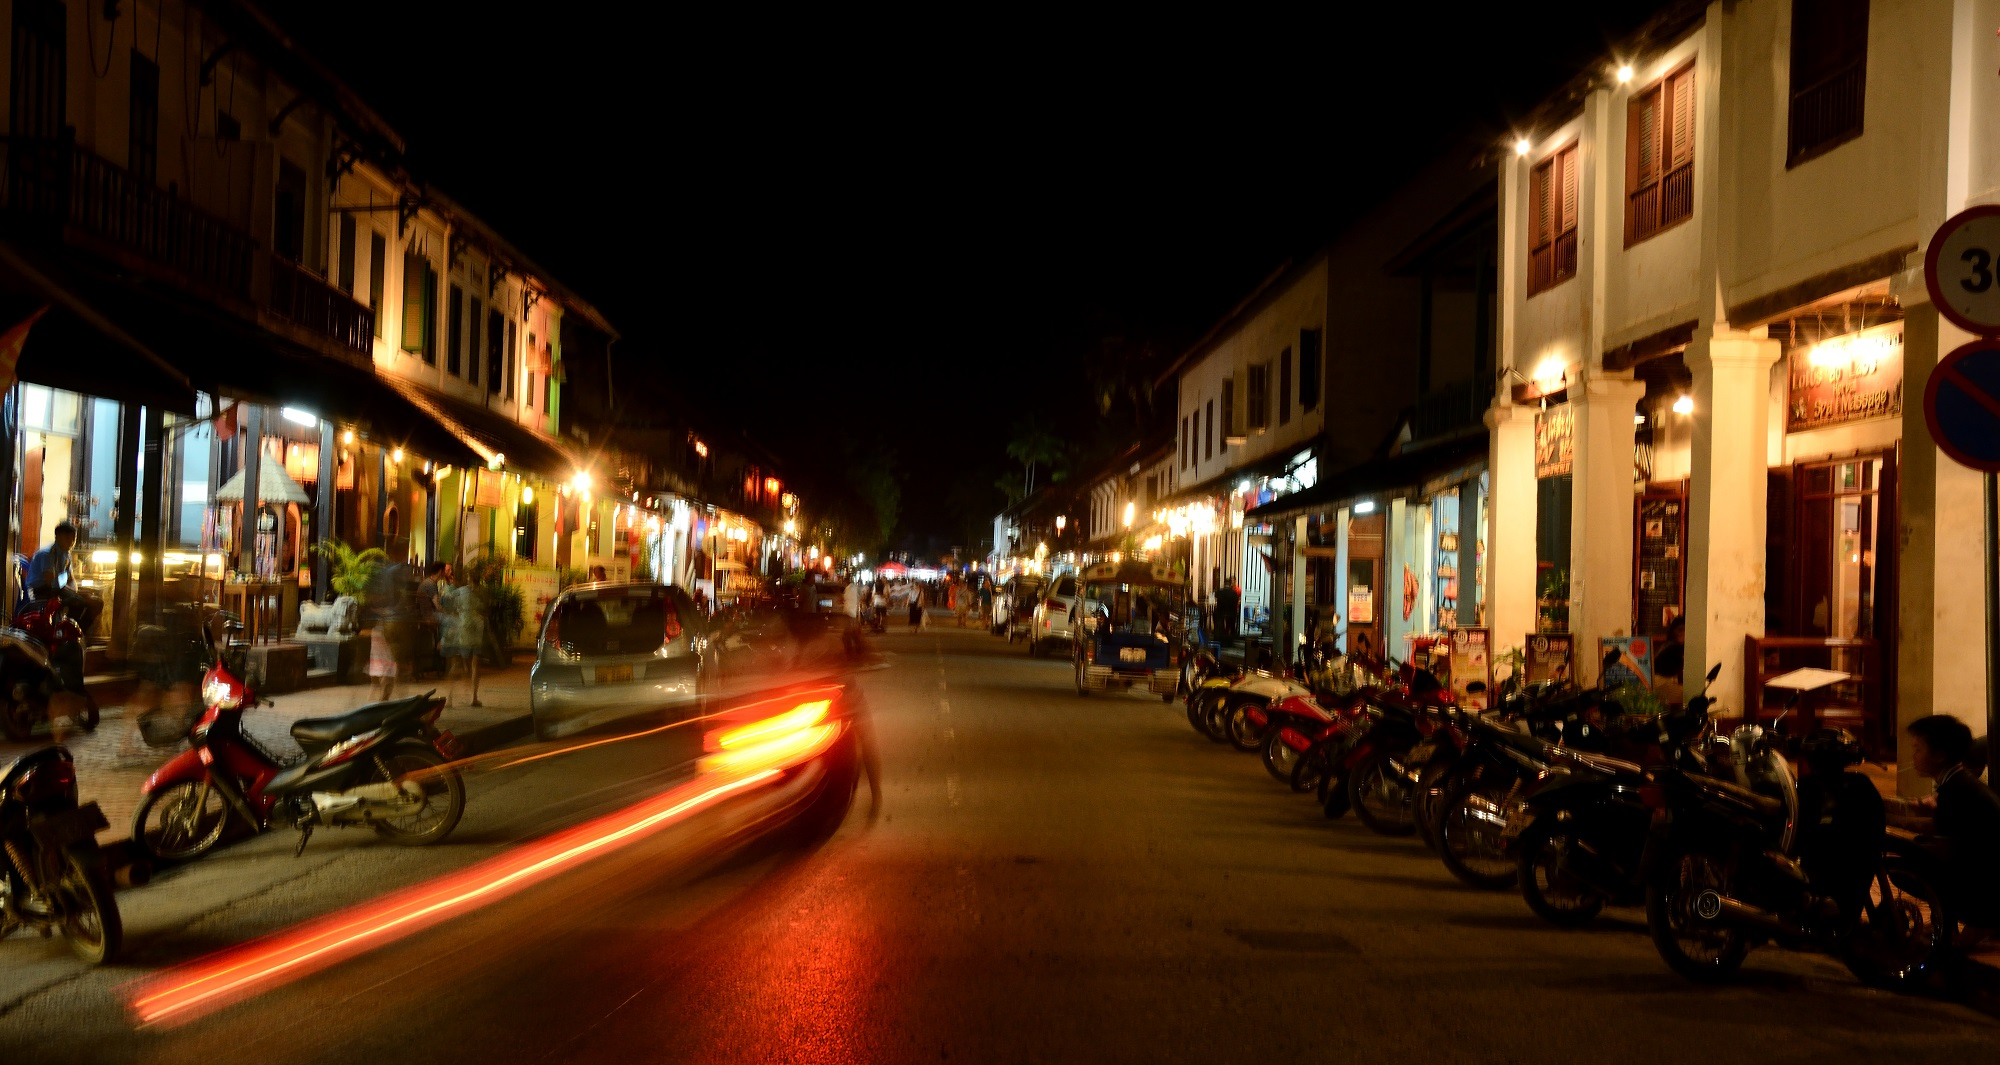 The high street of Luang Prabang at night